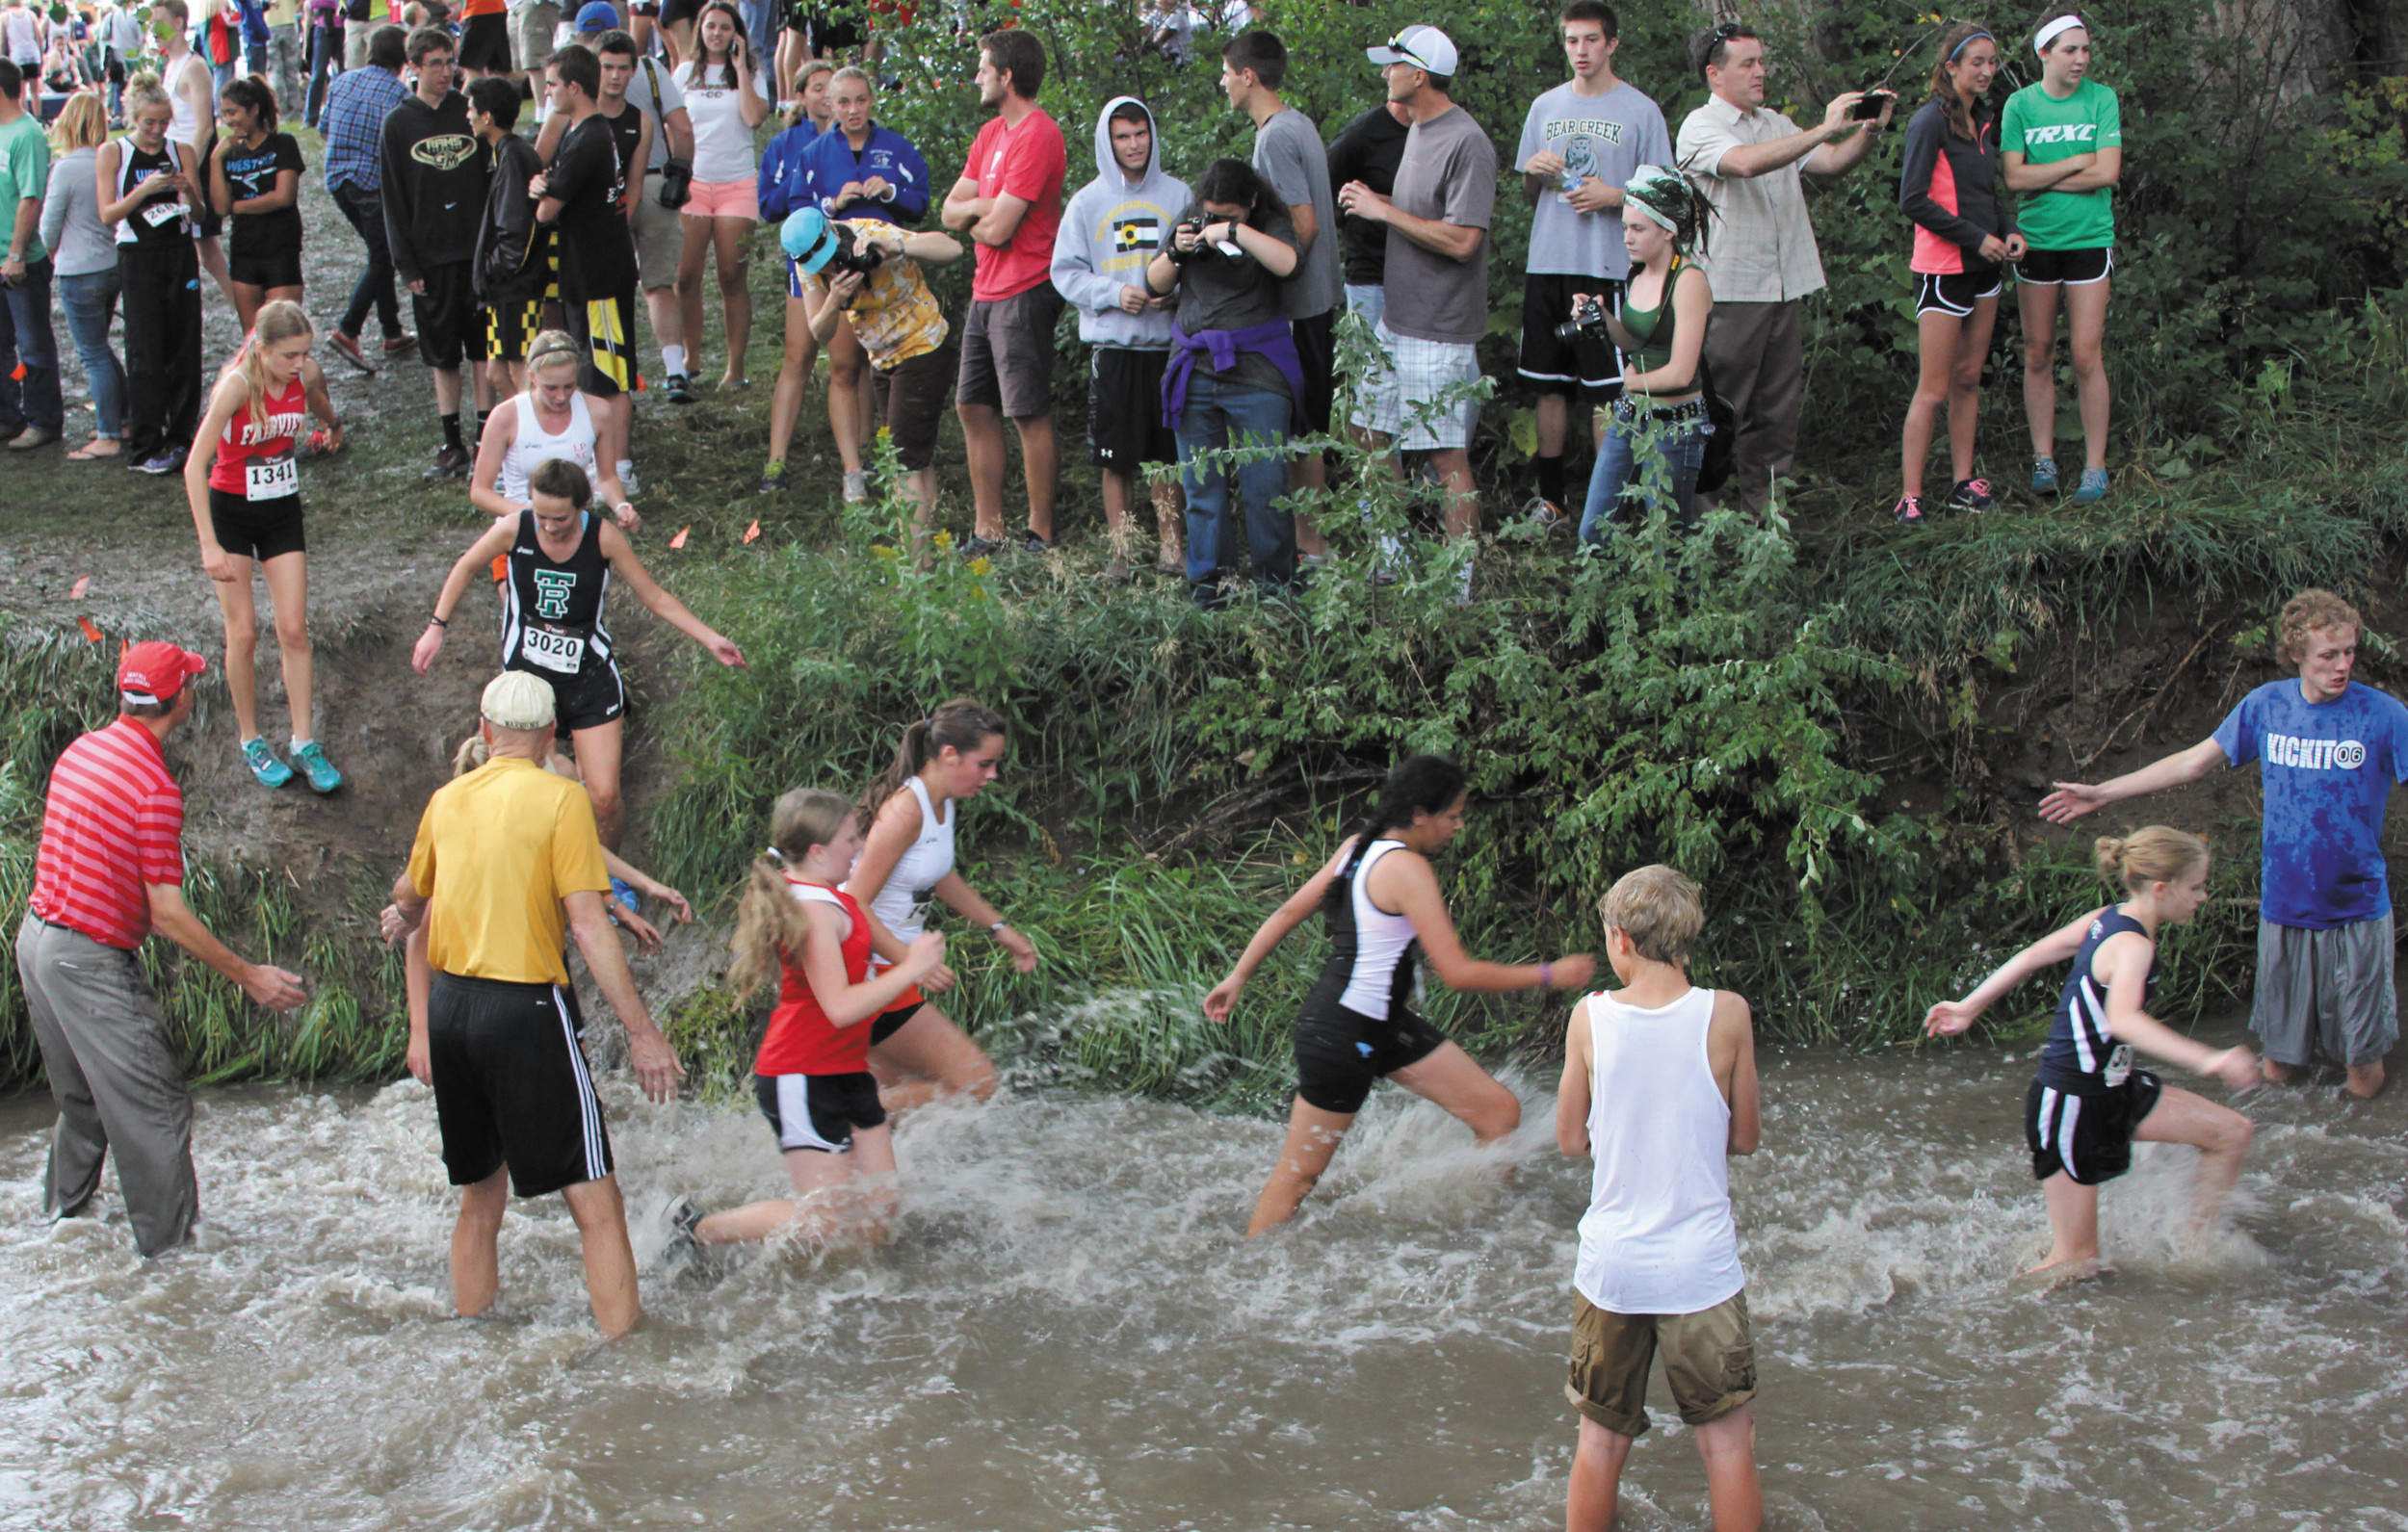 Heavy rains swelled the flow in the High Line Canal, transforming the traditional water jump into a thigh-deep wade through rushing water at the Aug. 29 Warrior Invitational at deKoevend Park. Runners from more than 50 schools overcame the water and muddy slopes to run in the meet.